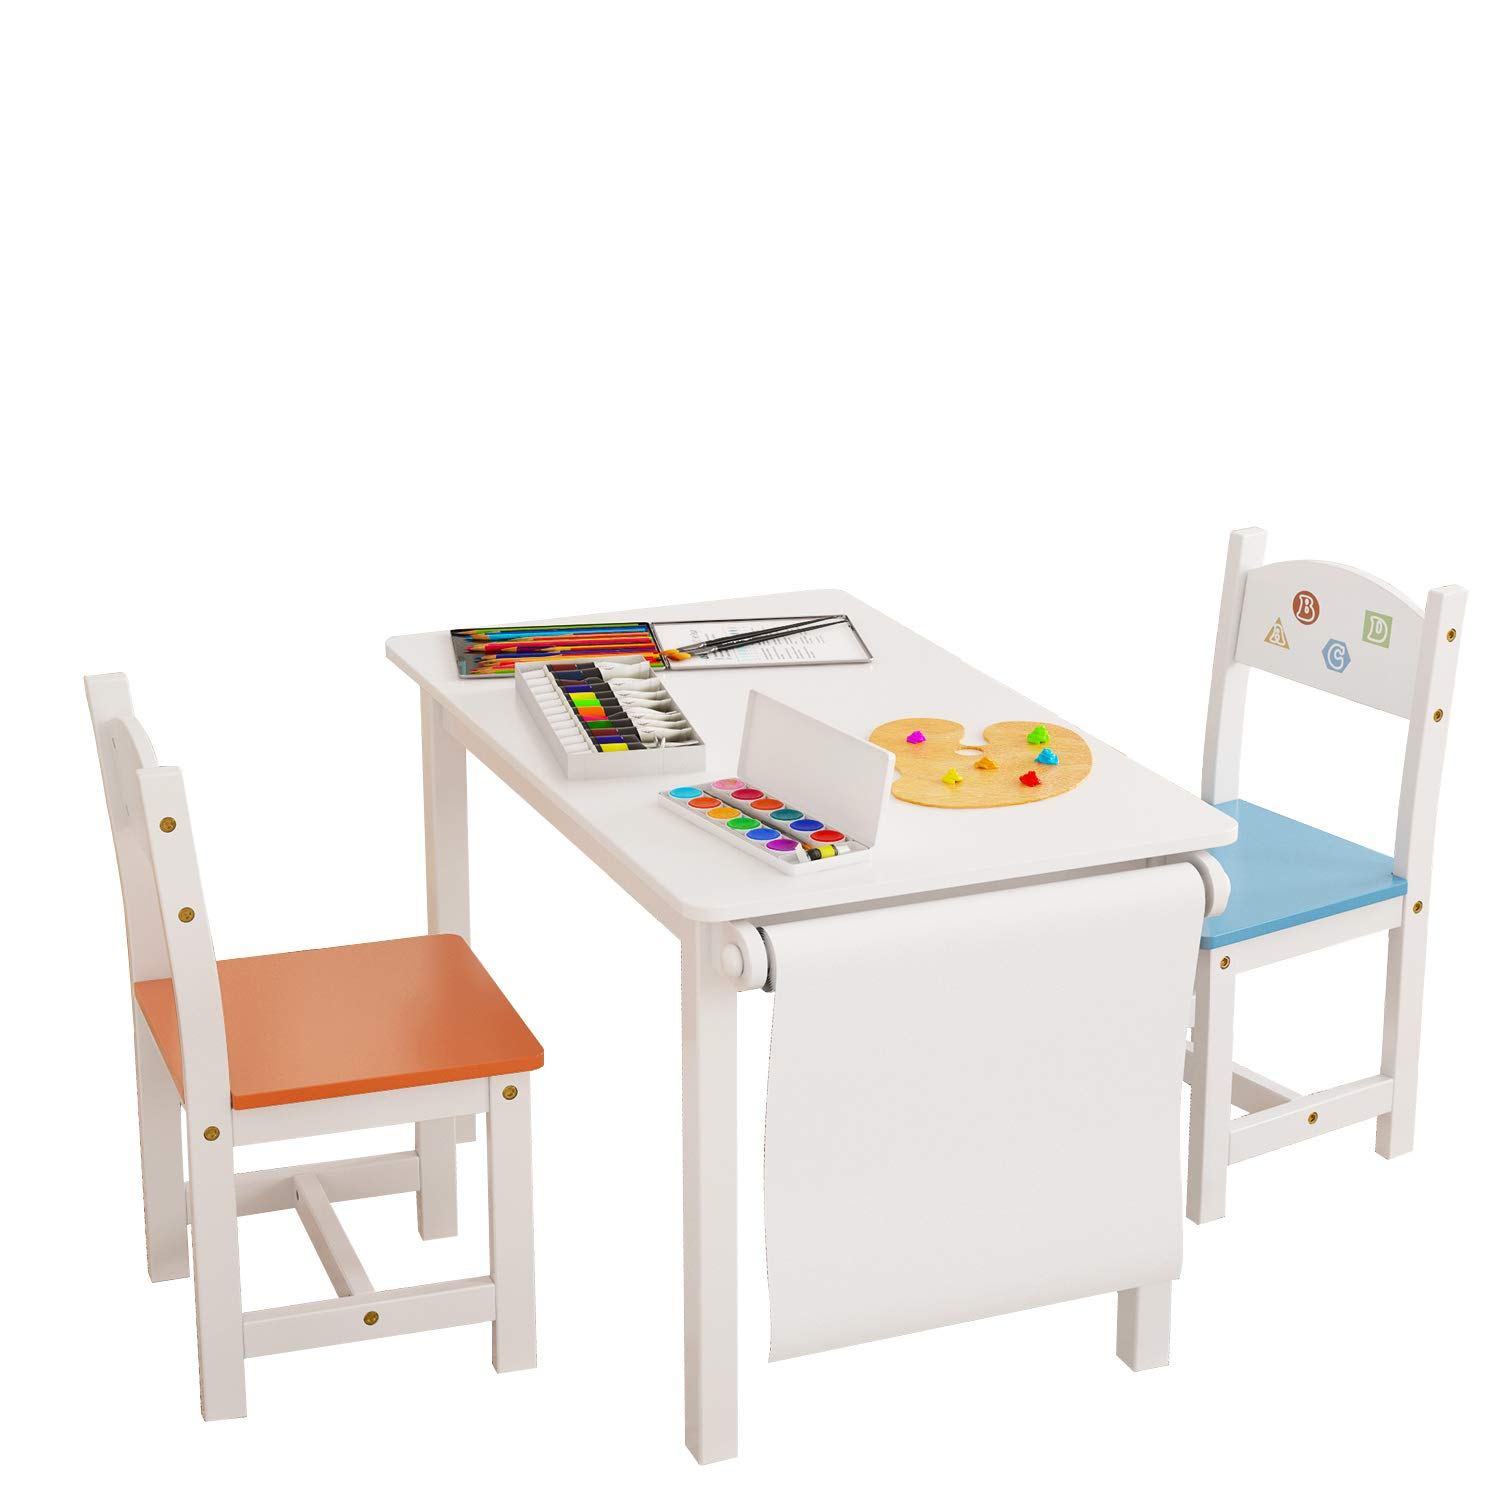 Homfa Kids Wooden Table and 2 Chair Set, 3-in-1 Kids Toddler Furniture Set Craft Table with Drawing Paper Rack for Dining Painting Reading Playroom Safe and Sturdy, White by Homfa